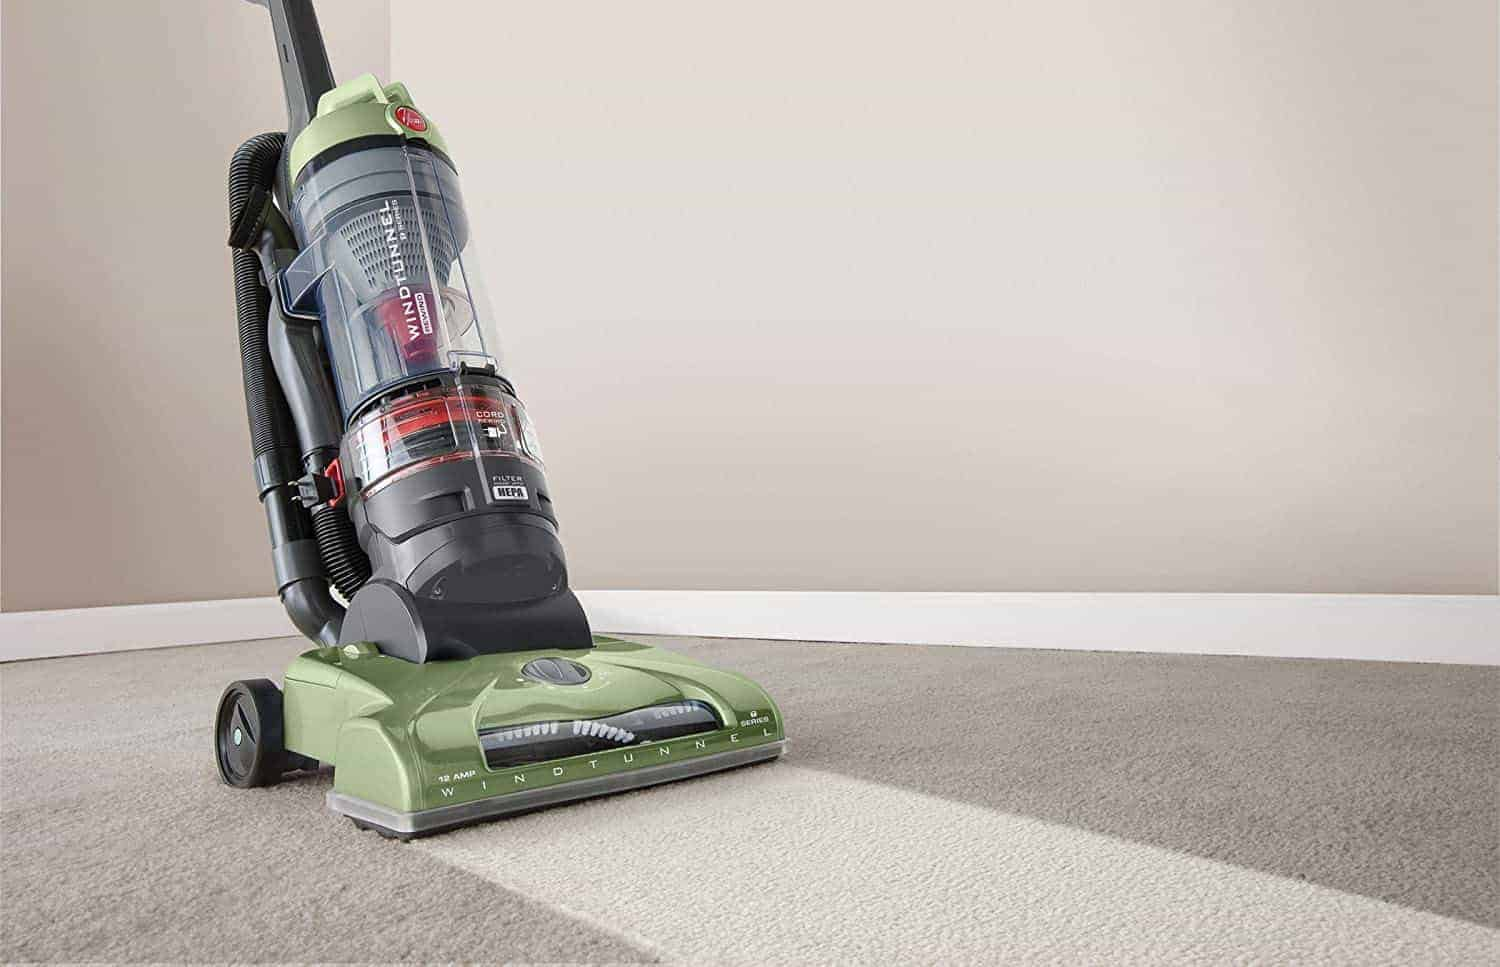 Best upright vacuum for carpets: Hoover UH70120 T-Series WindTunnel Rewind